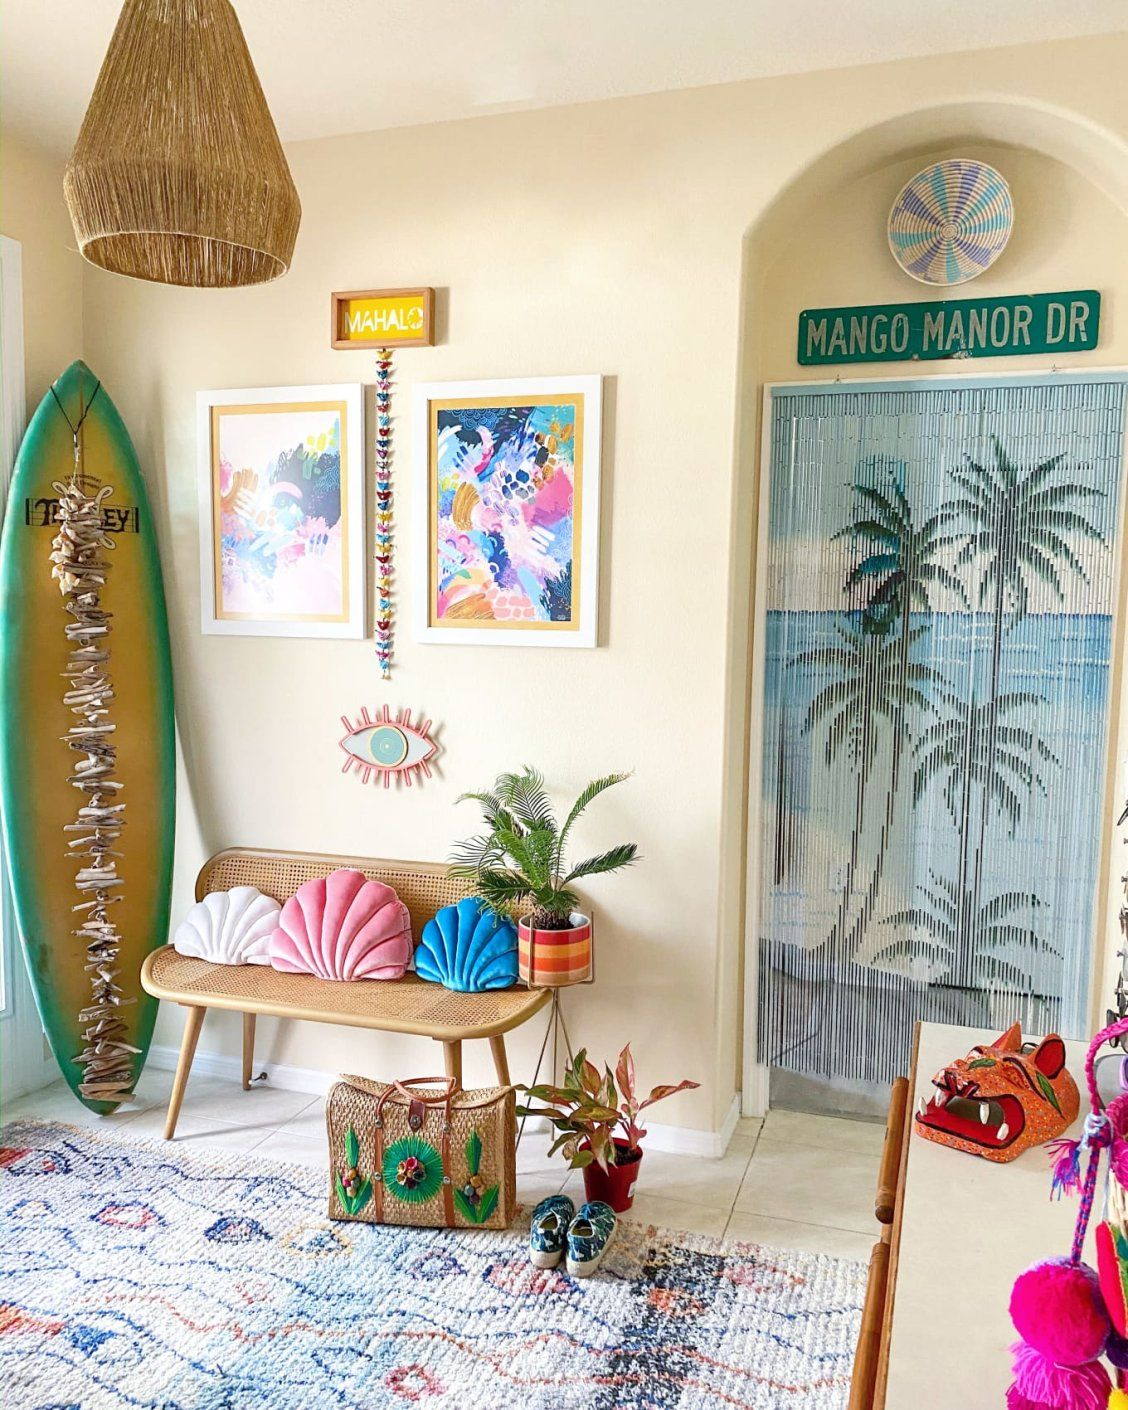 This Cheery Florida Home S Tropical Bohemian Surf Shack Bungalow Style Will Make You Smile In 2020 Surf Room Decor Tropical Bedroom Decor Tropical Decor Living Room